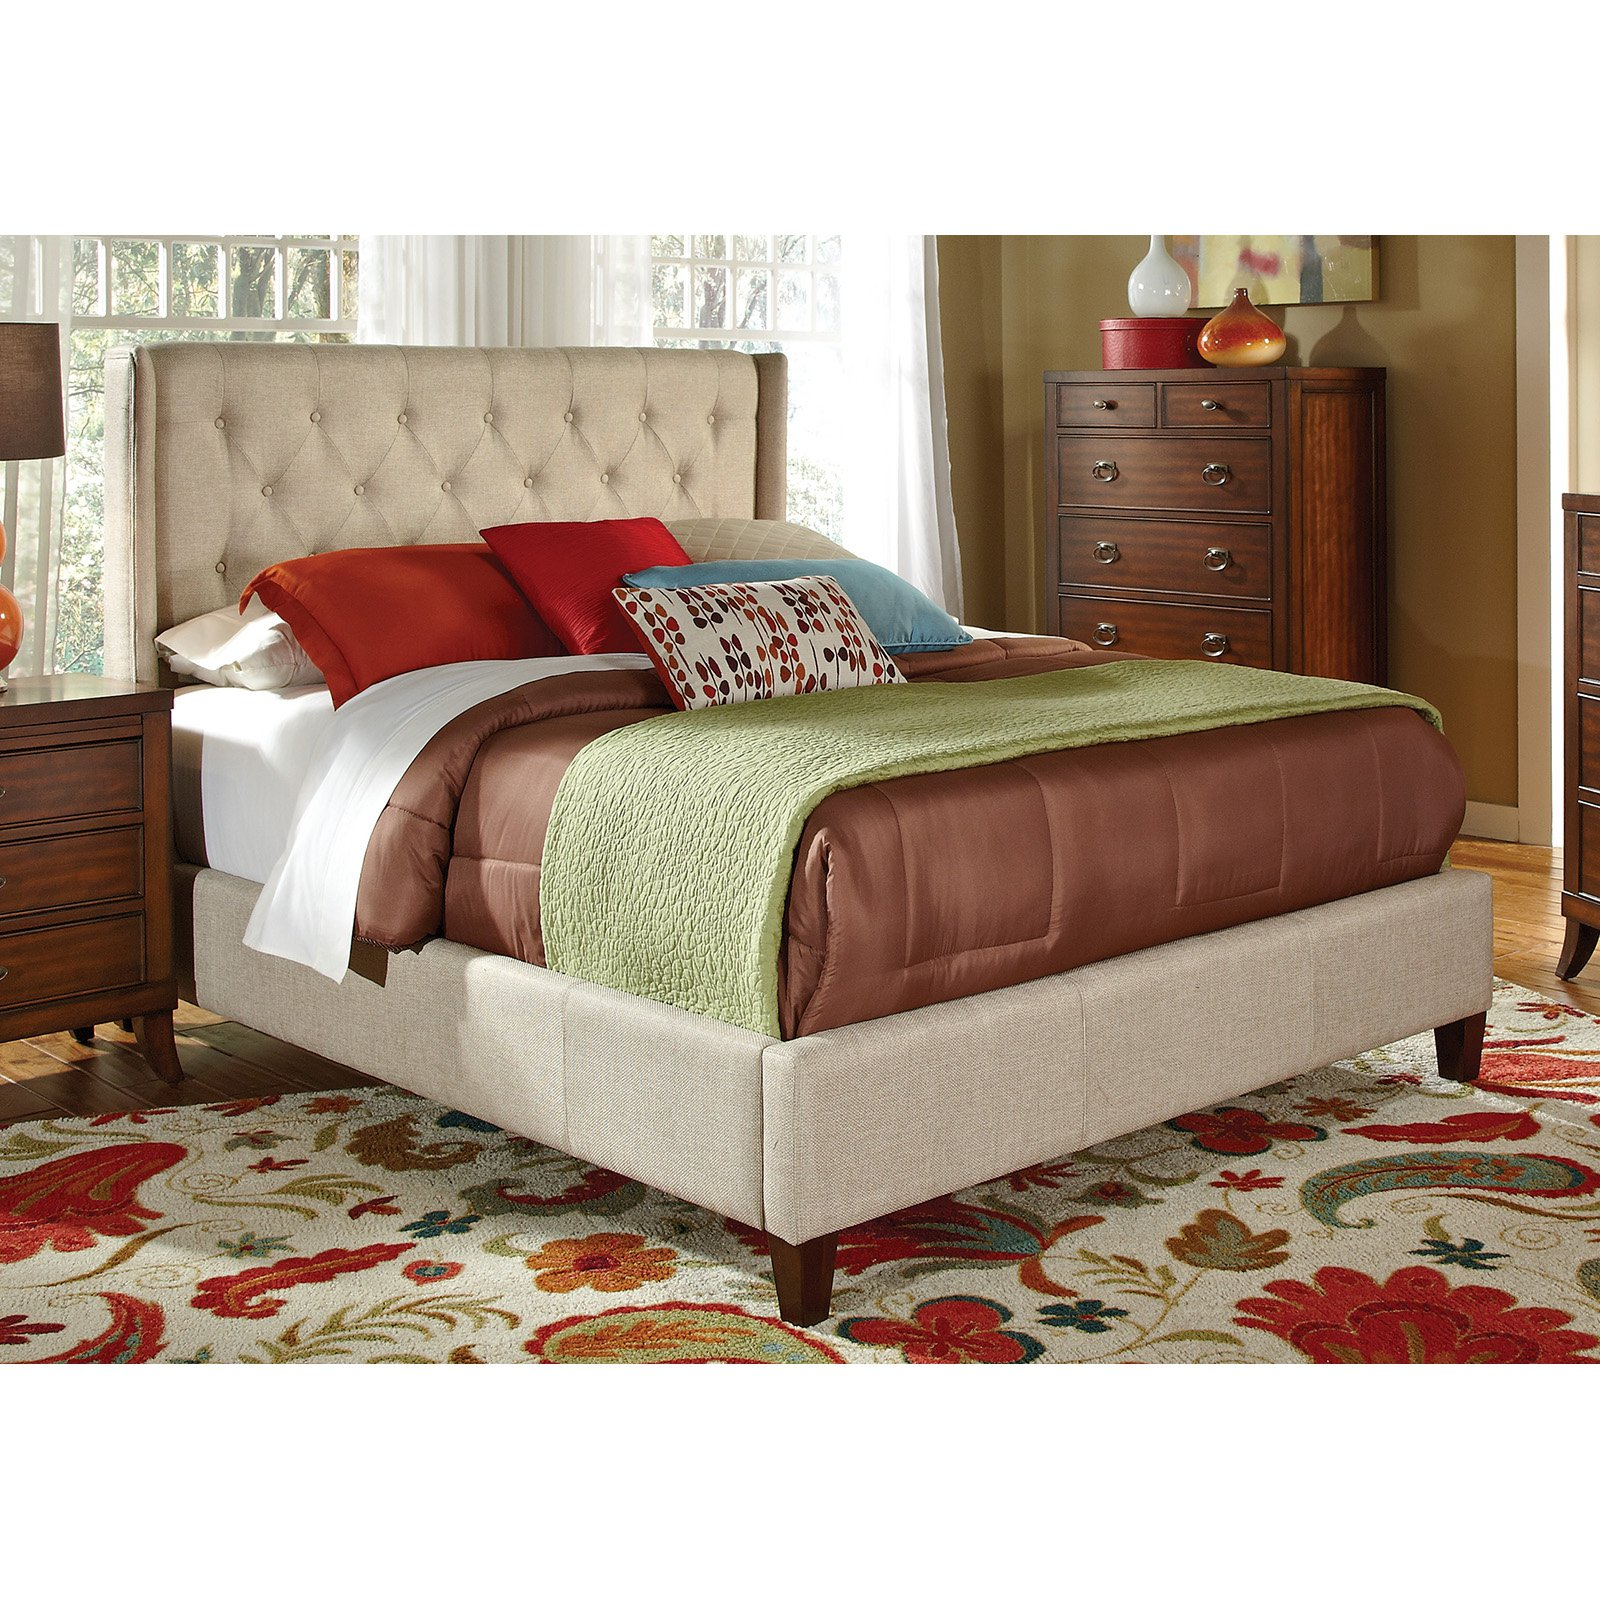 Coaster Furniture Owen Upholstered Bed